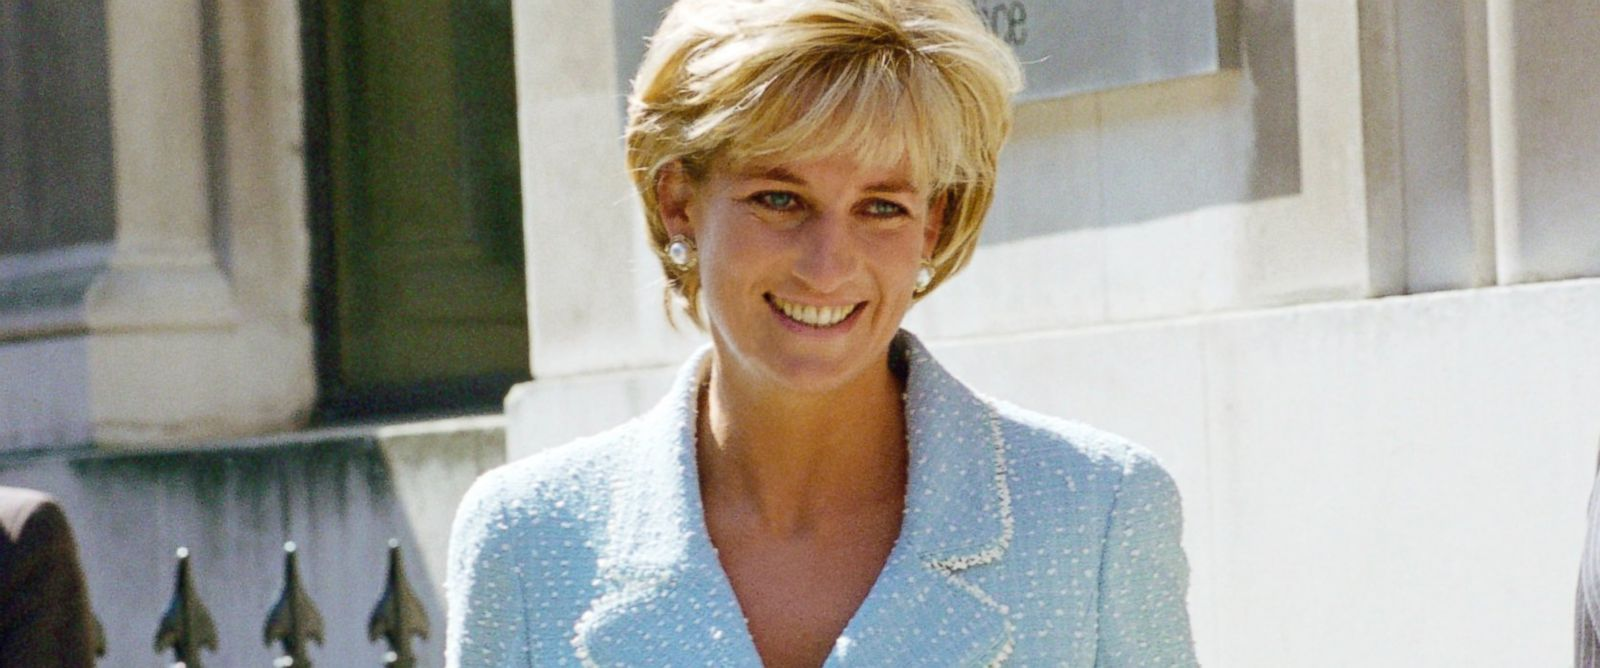 Inside princess diana 39 s tumultuous love affair with a Diana princess of wales affairs